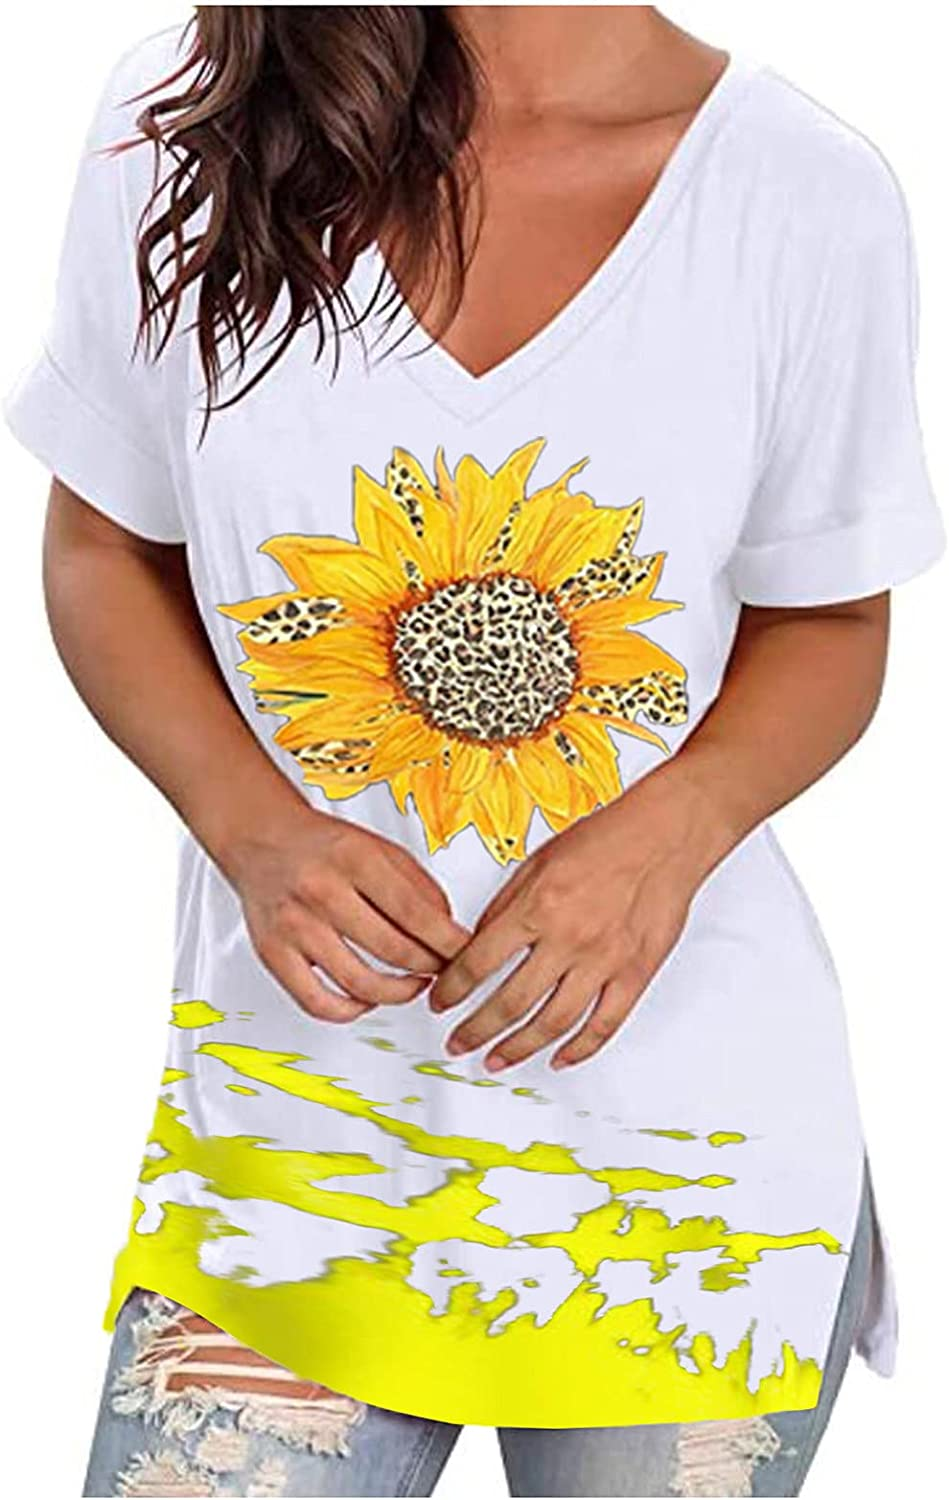 Sunflower Short Sleeve for Women Tie Dye Loose Fit Tees Be Happy Saying T Shirts Cute Graphic Summer Blouses Tops